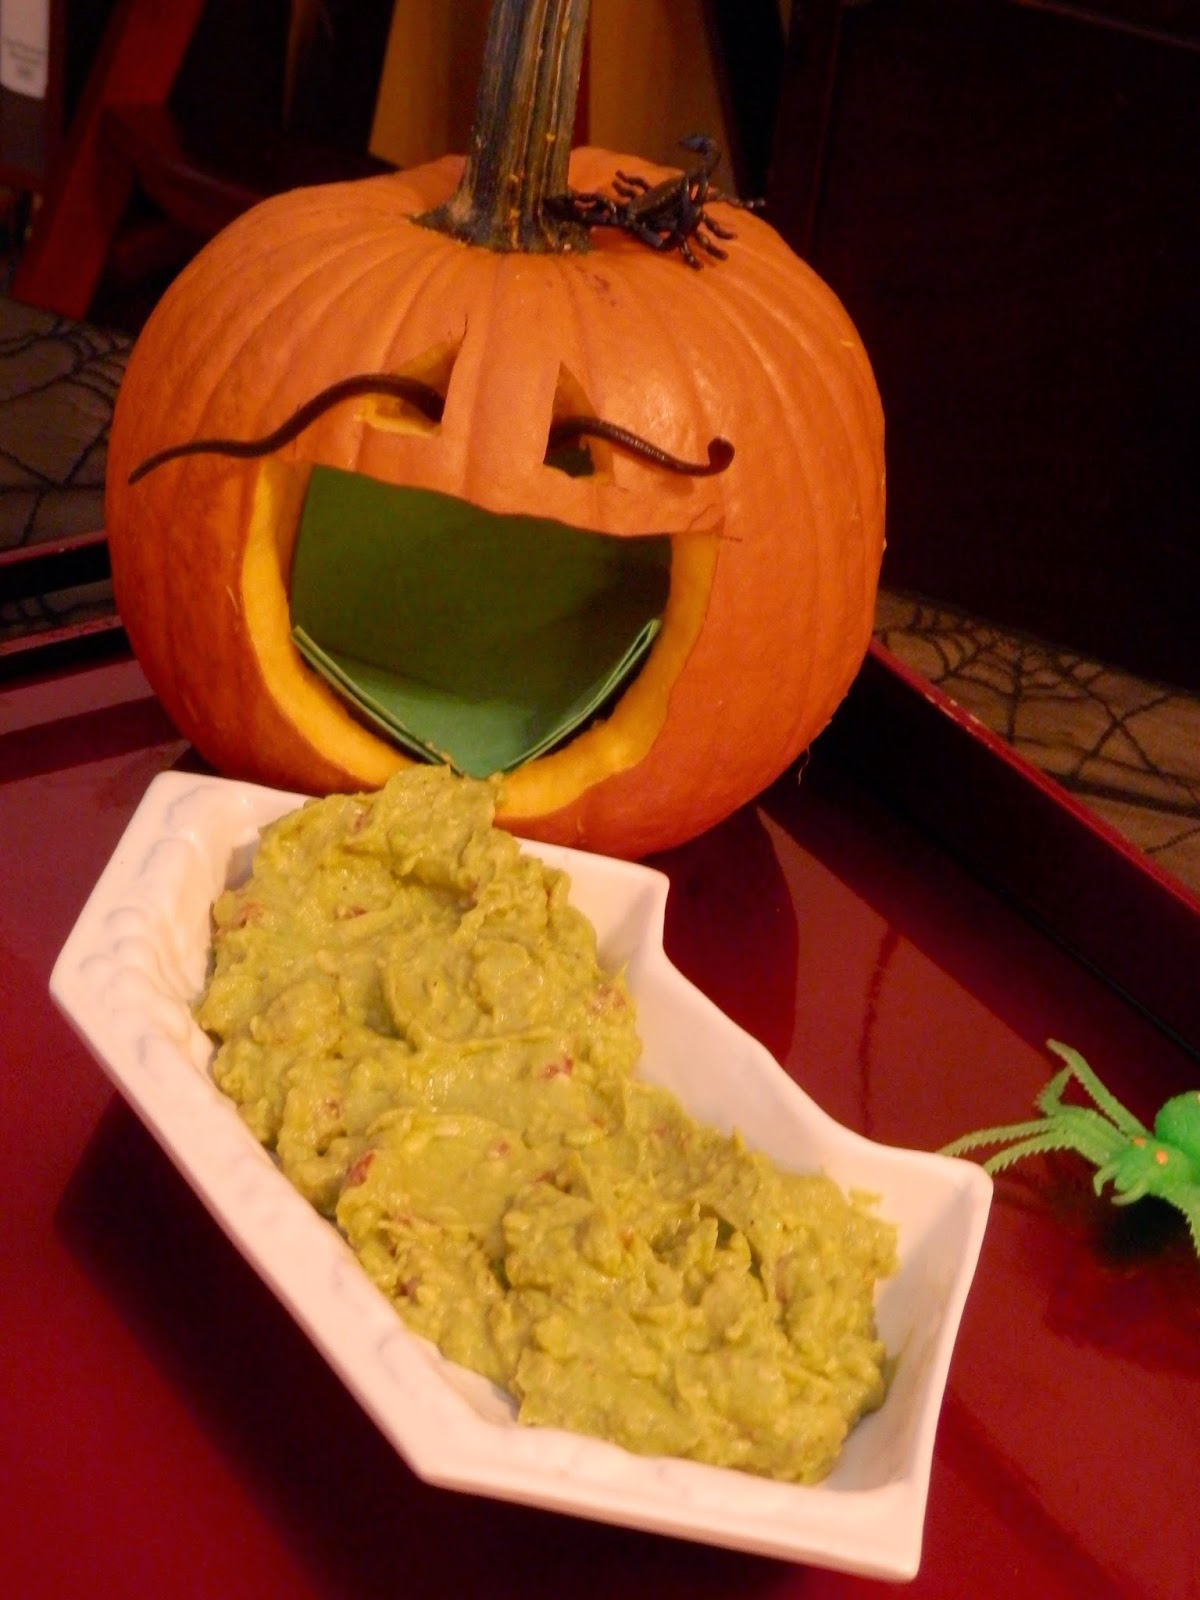 Halloween pumpkin throwing up guacamole